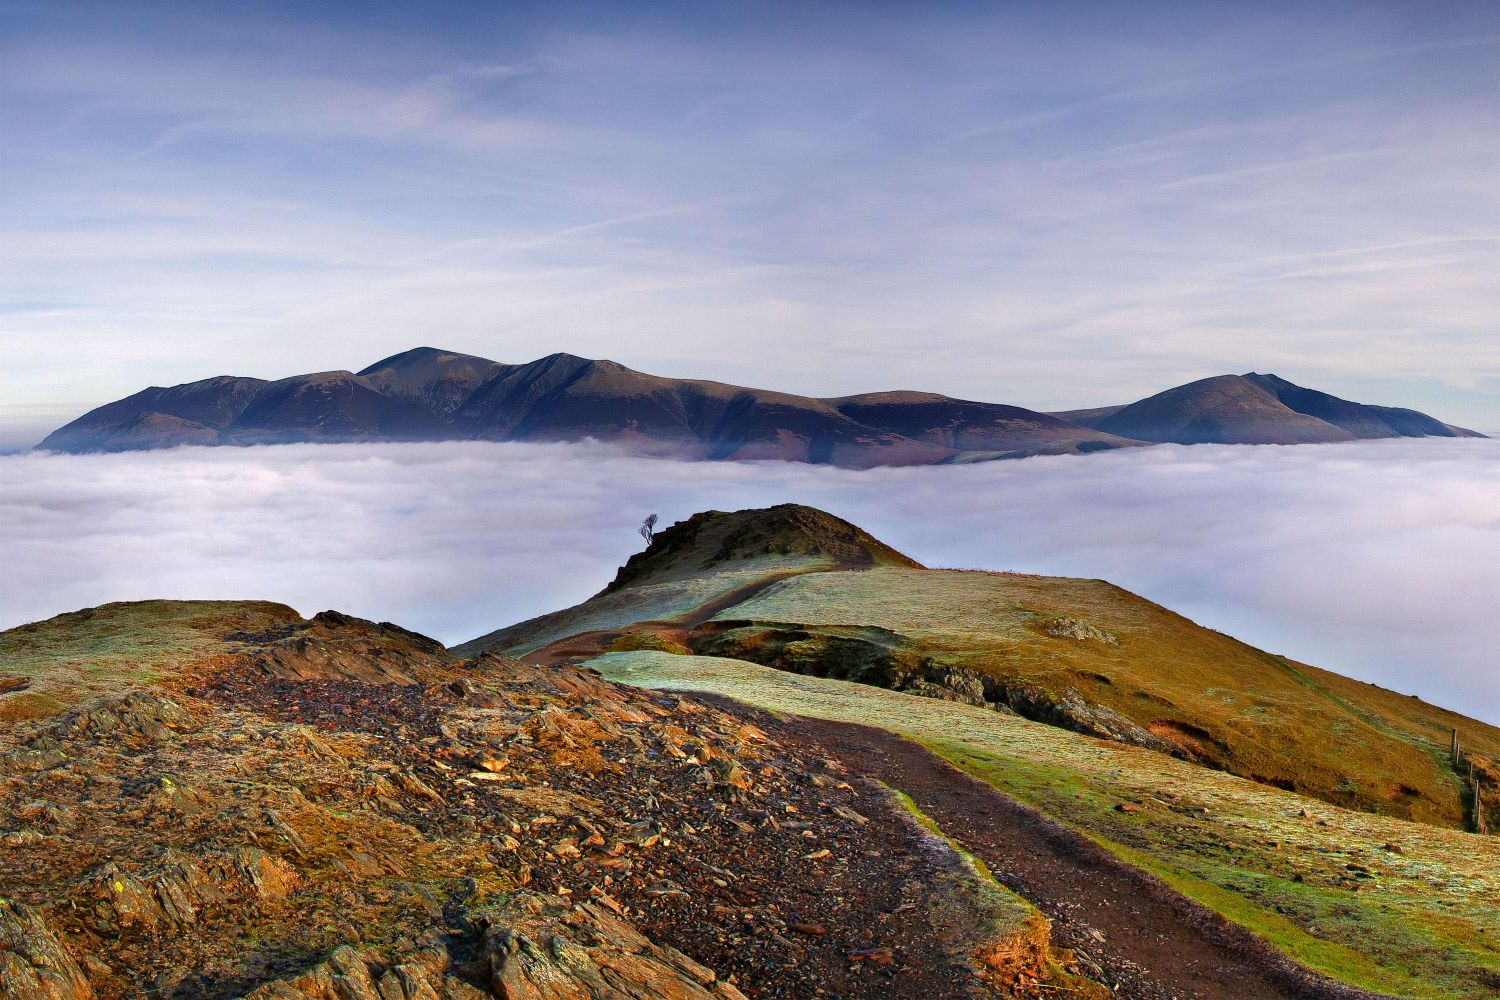 Above the clouds on Catbells with Skiddaw and Blencathra visible beyond